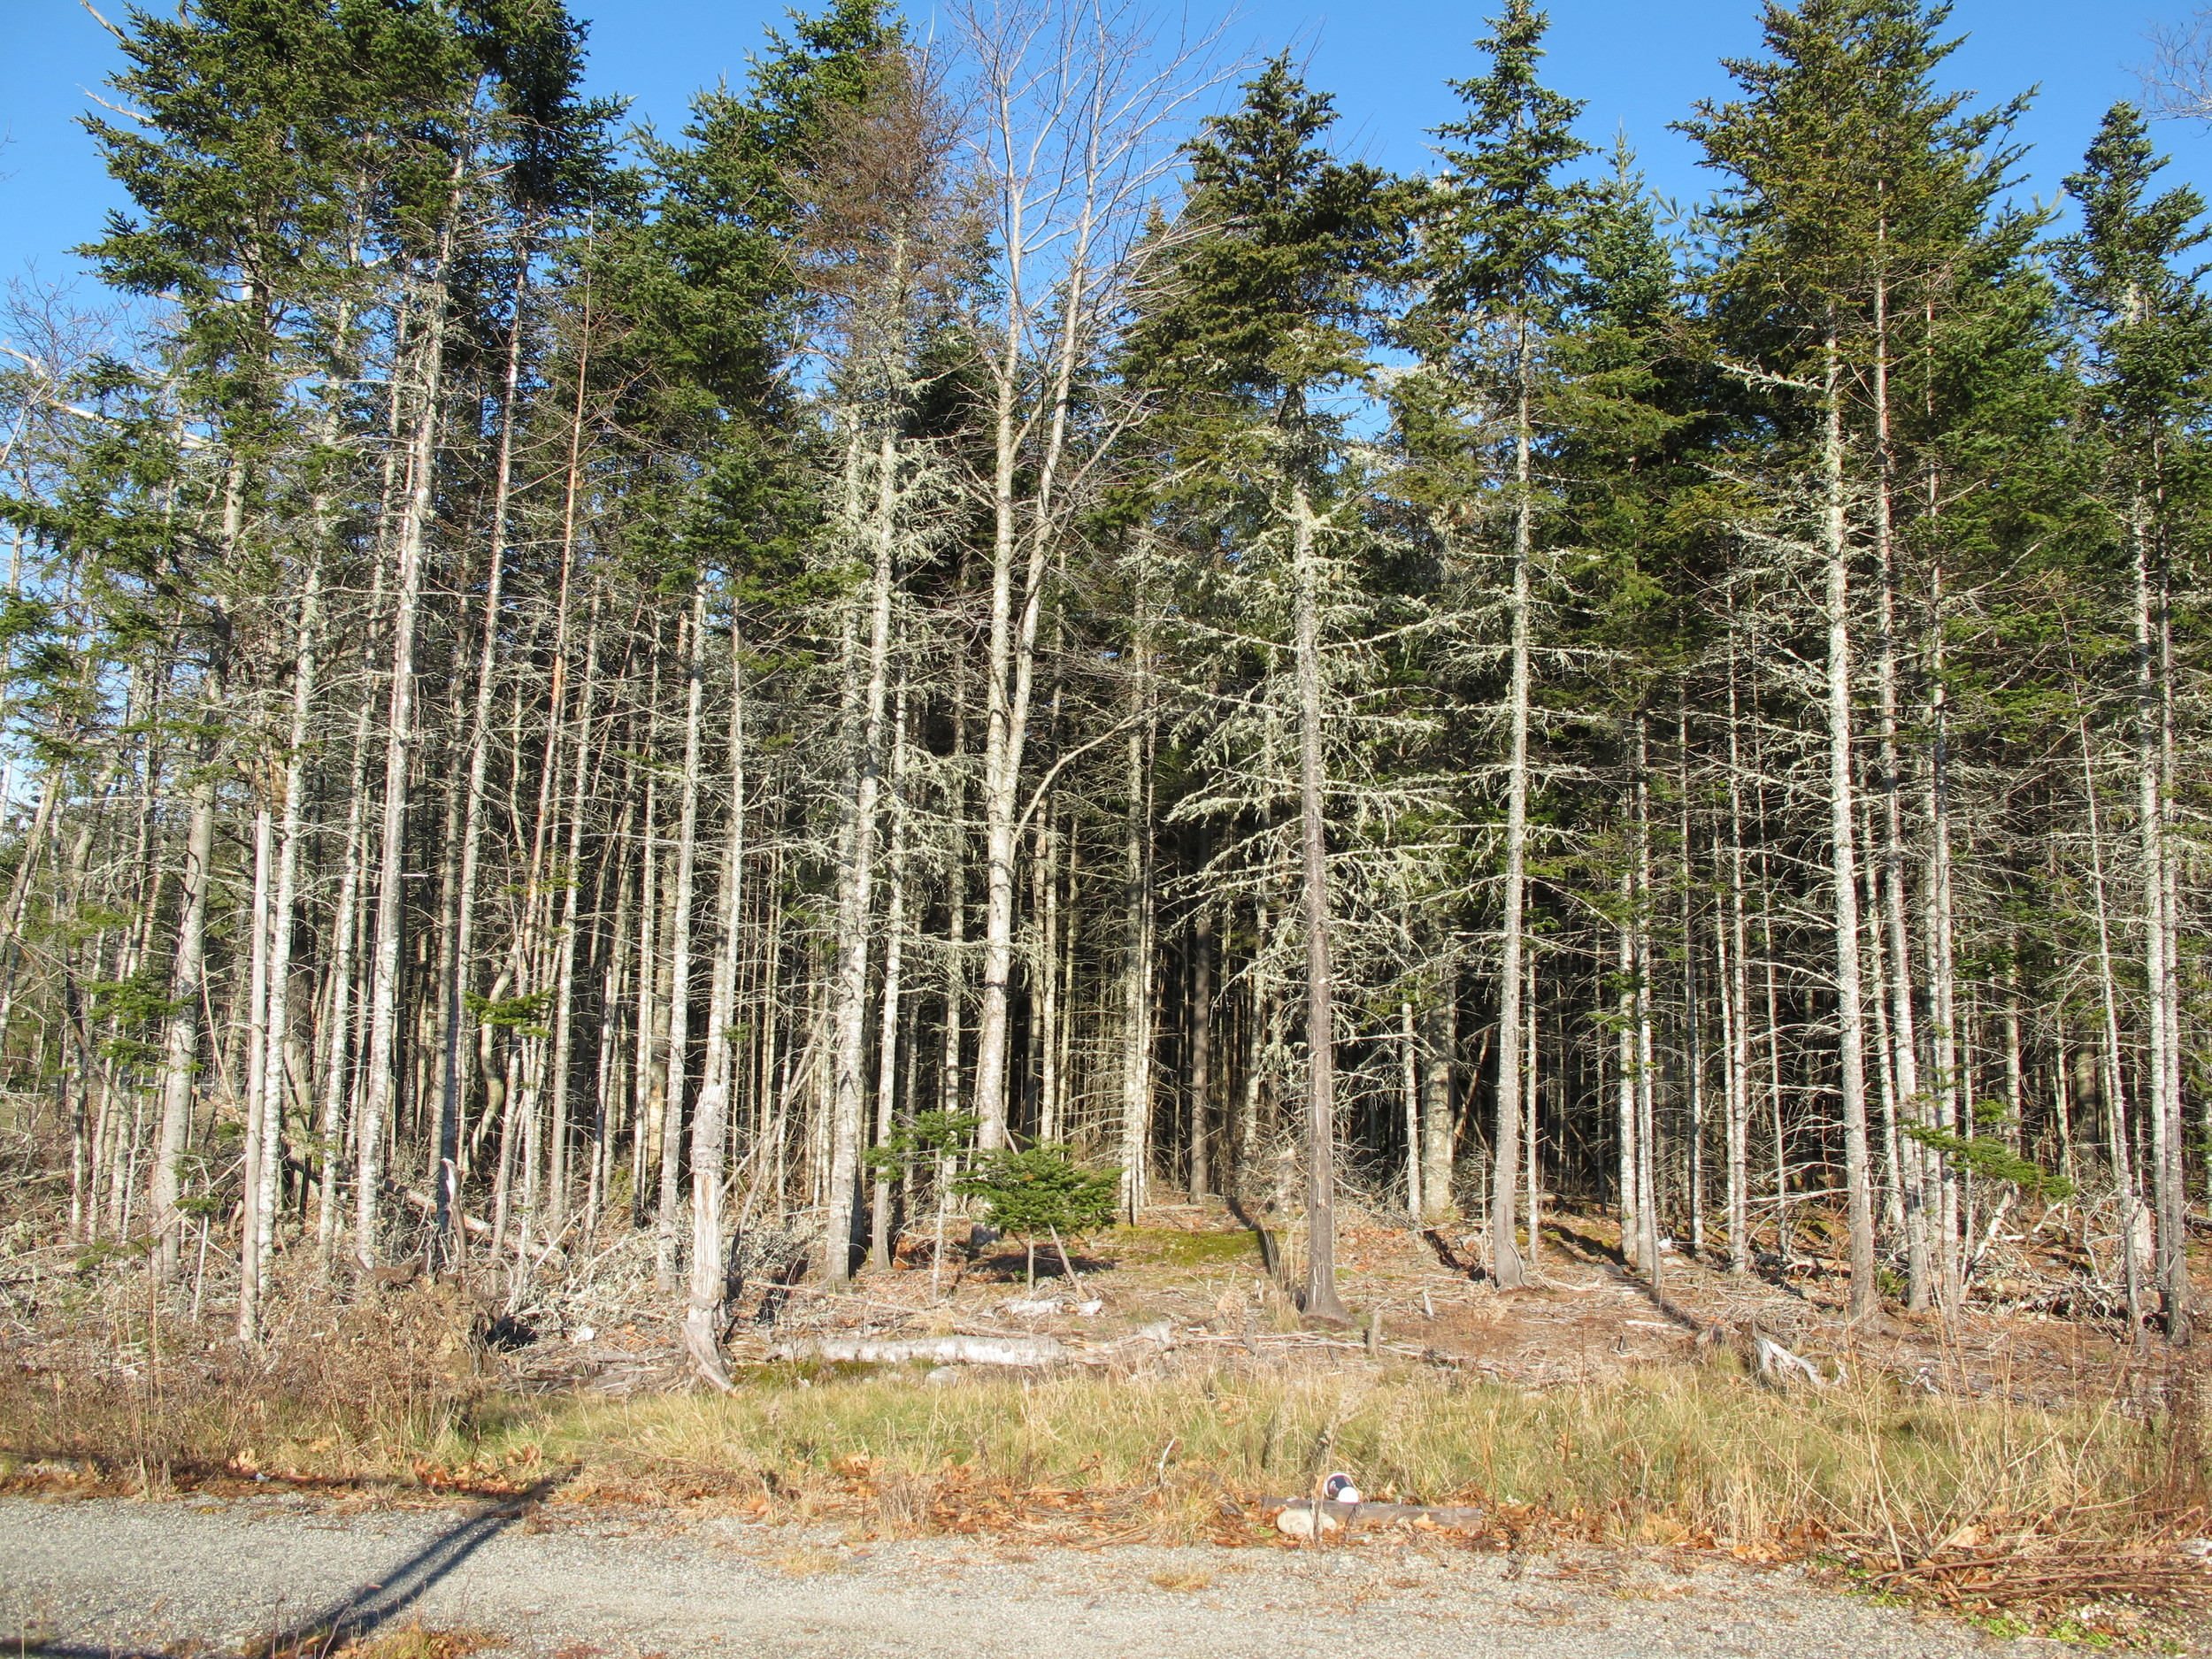 The forest at the edge of the parking lot offers a glimpse of what once covered the hilltop.